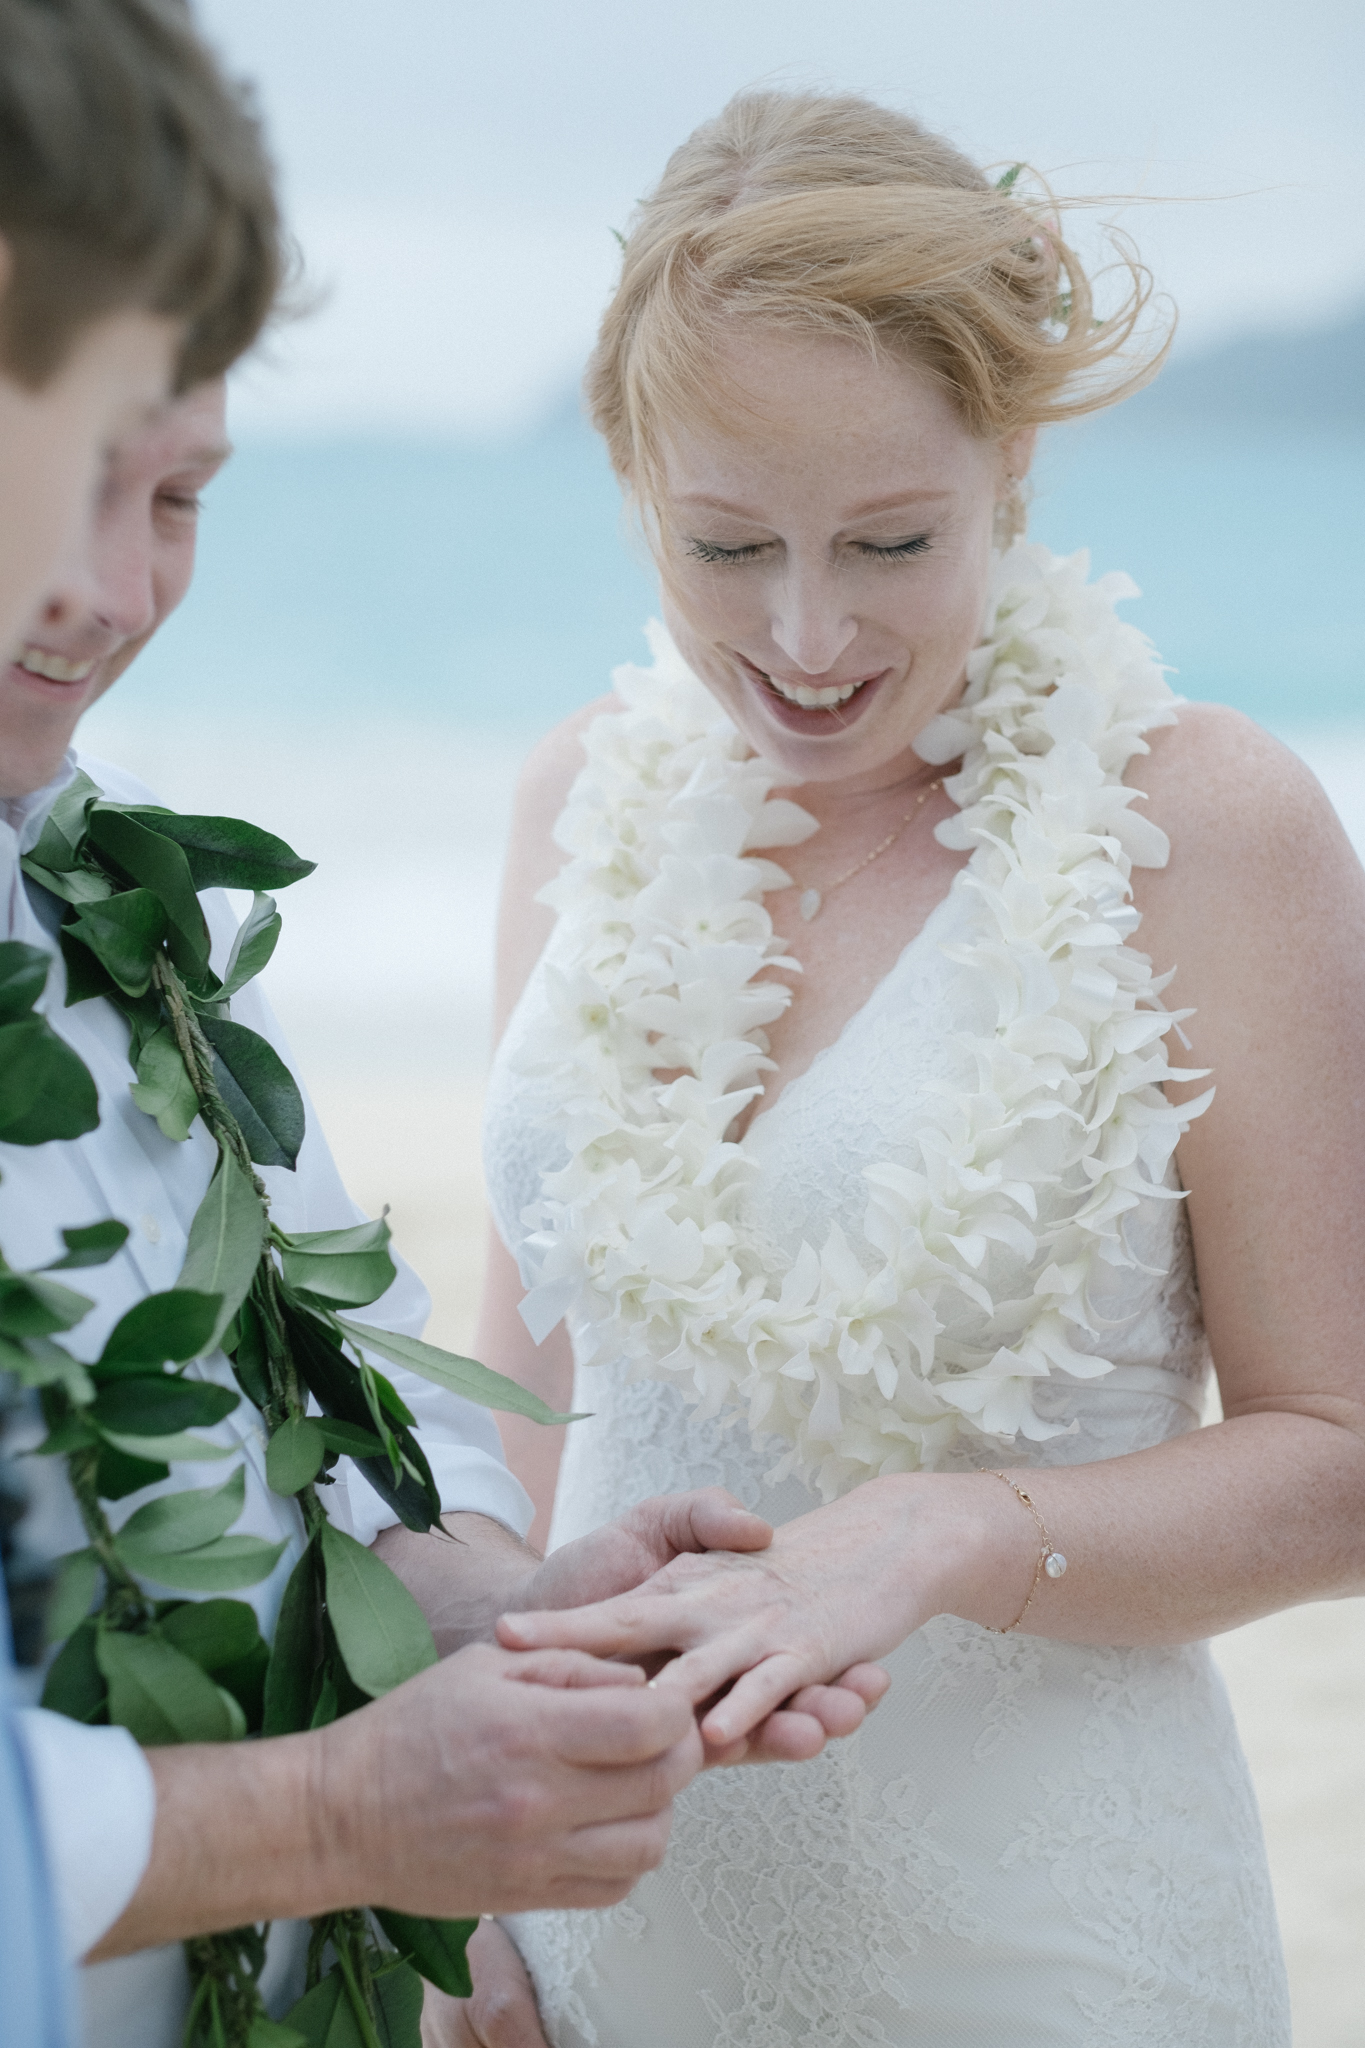 waimanalo_beach_wedding_photographer-25.jpg